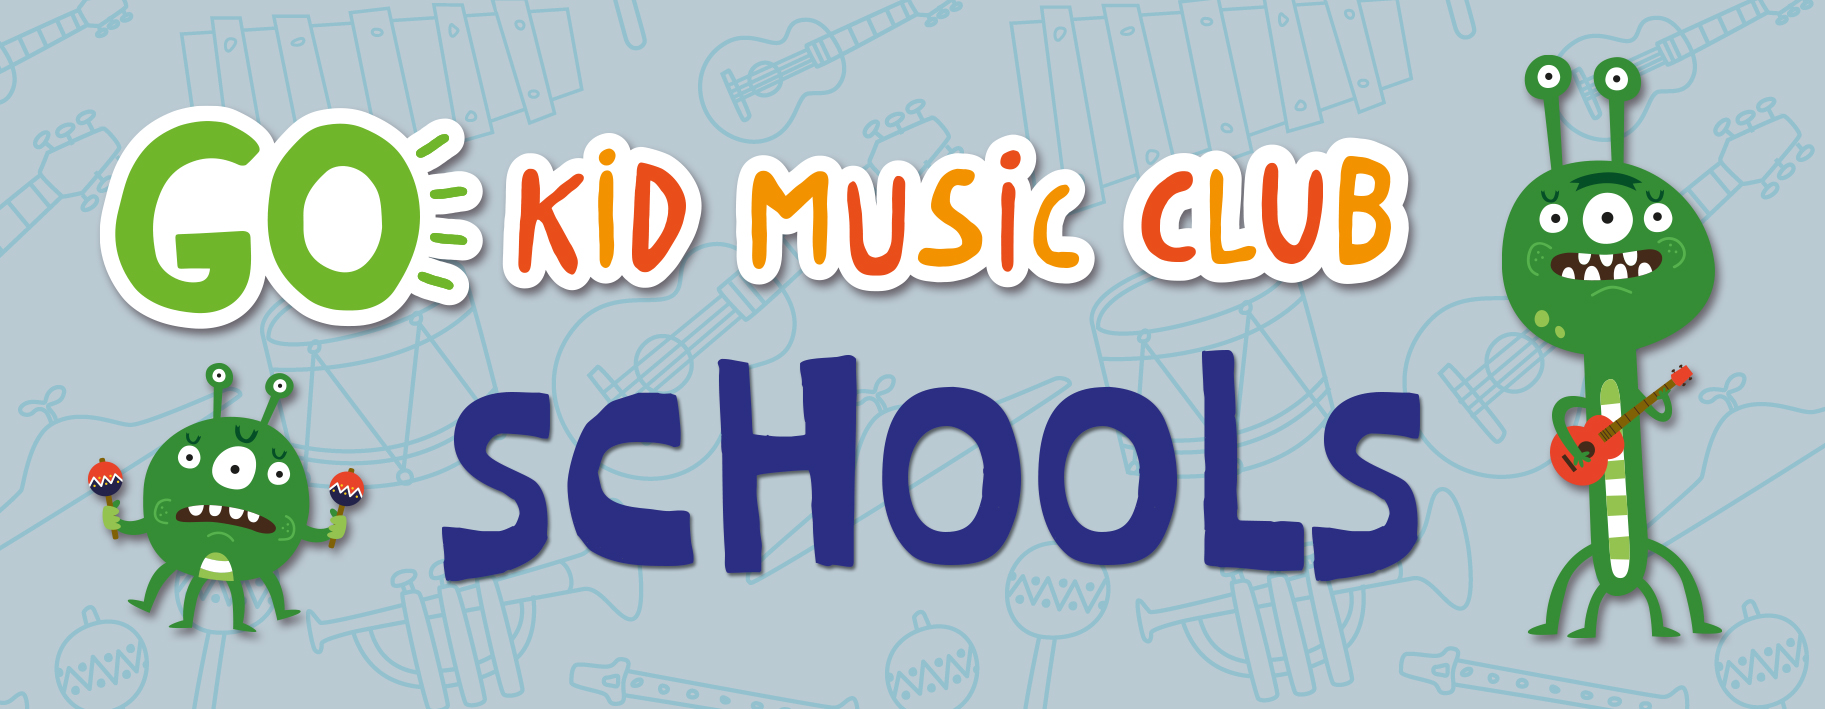 go kid music logo with schools text and green aliens